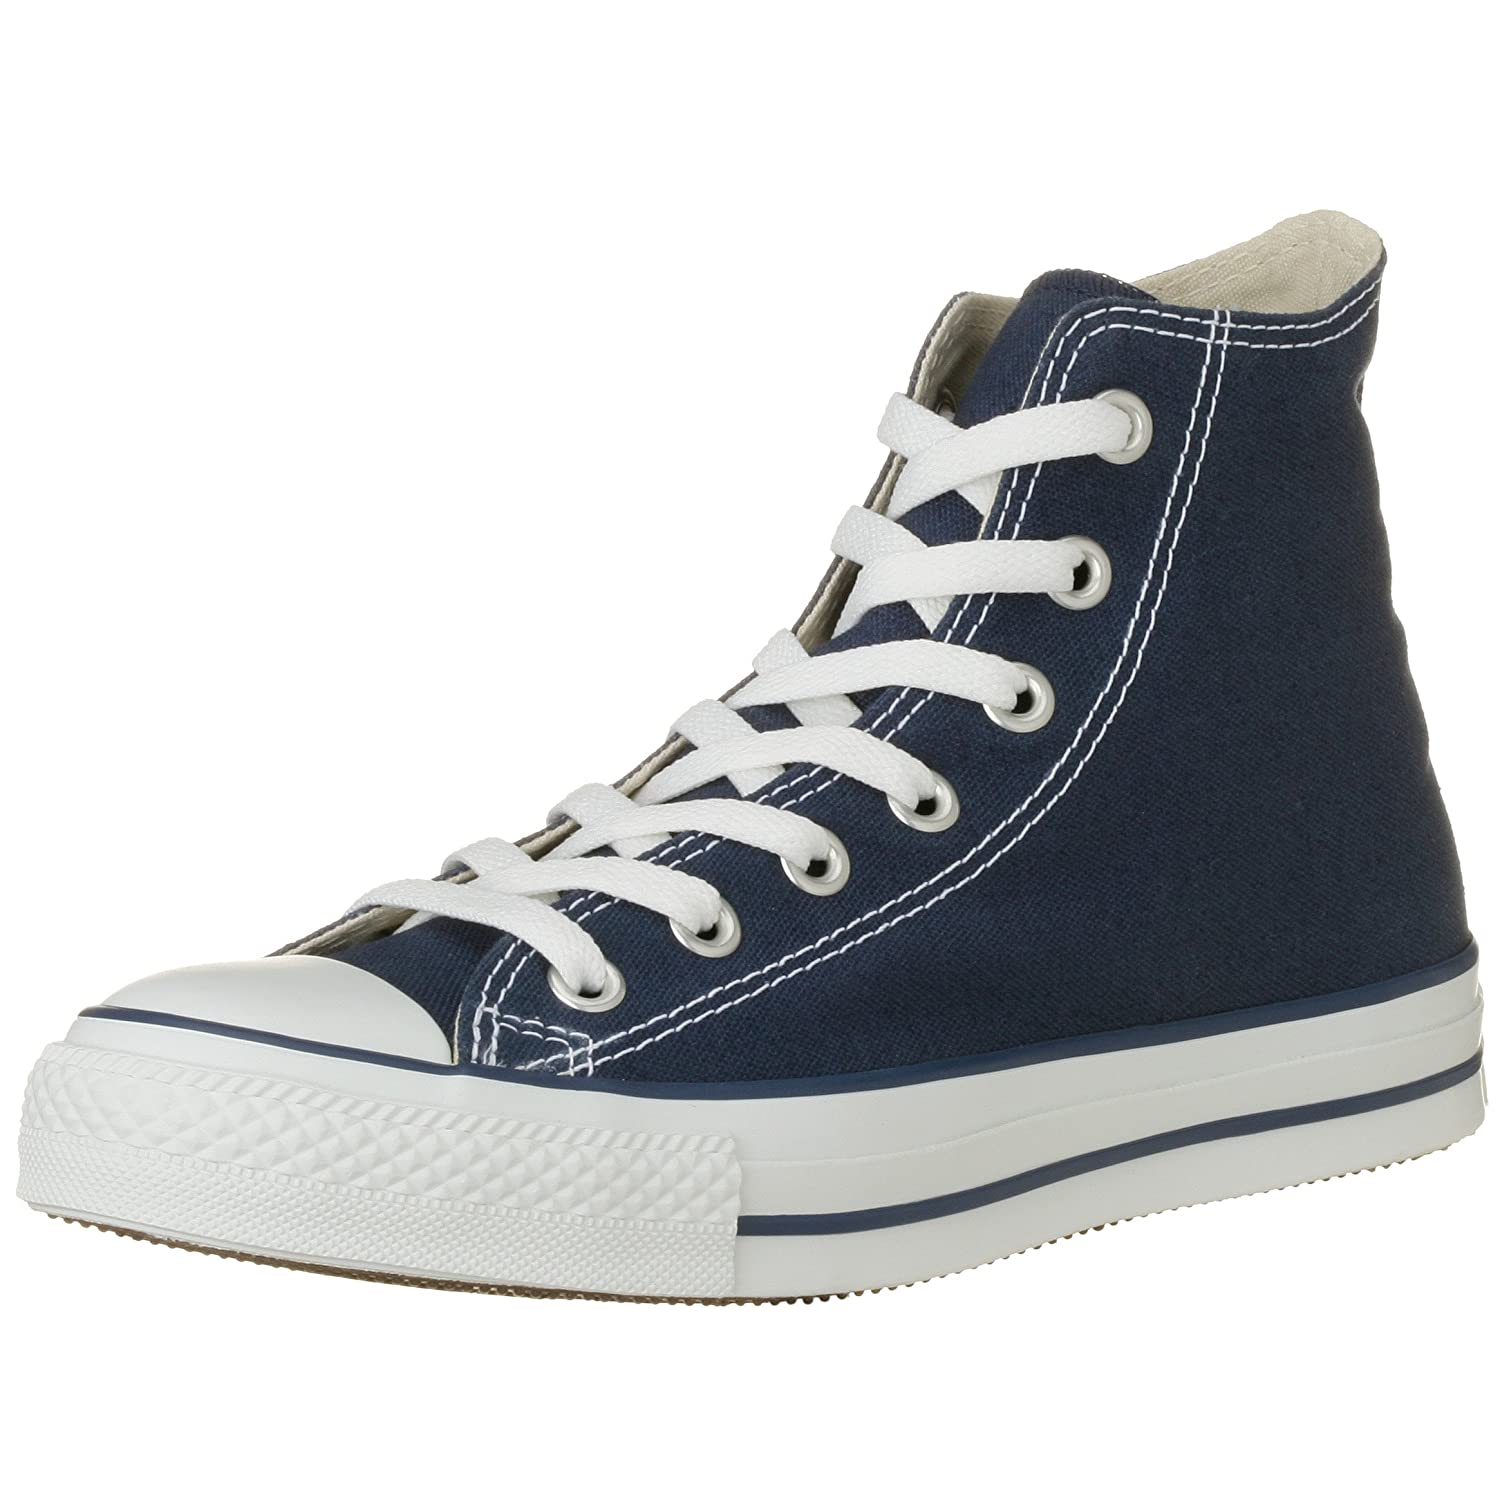 Amazon.co.jp: [コンバース] CONVERSE CANVAS ALL STAR HI: シューズ&バッグ:通販